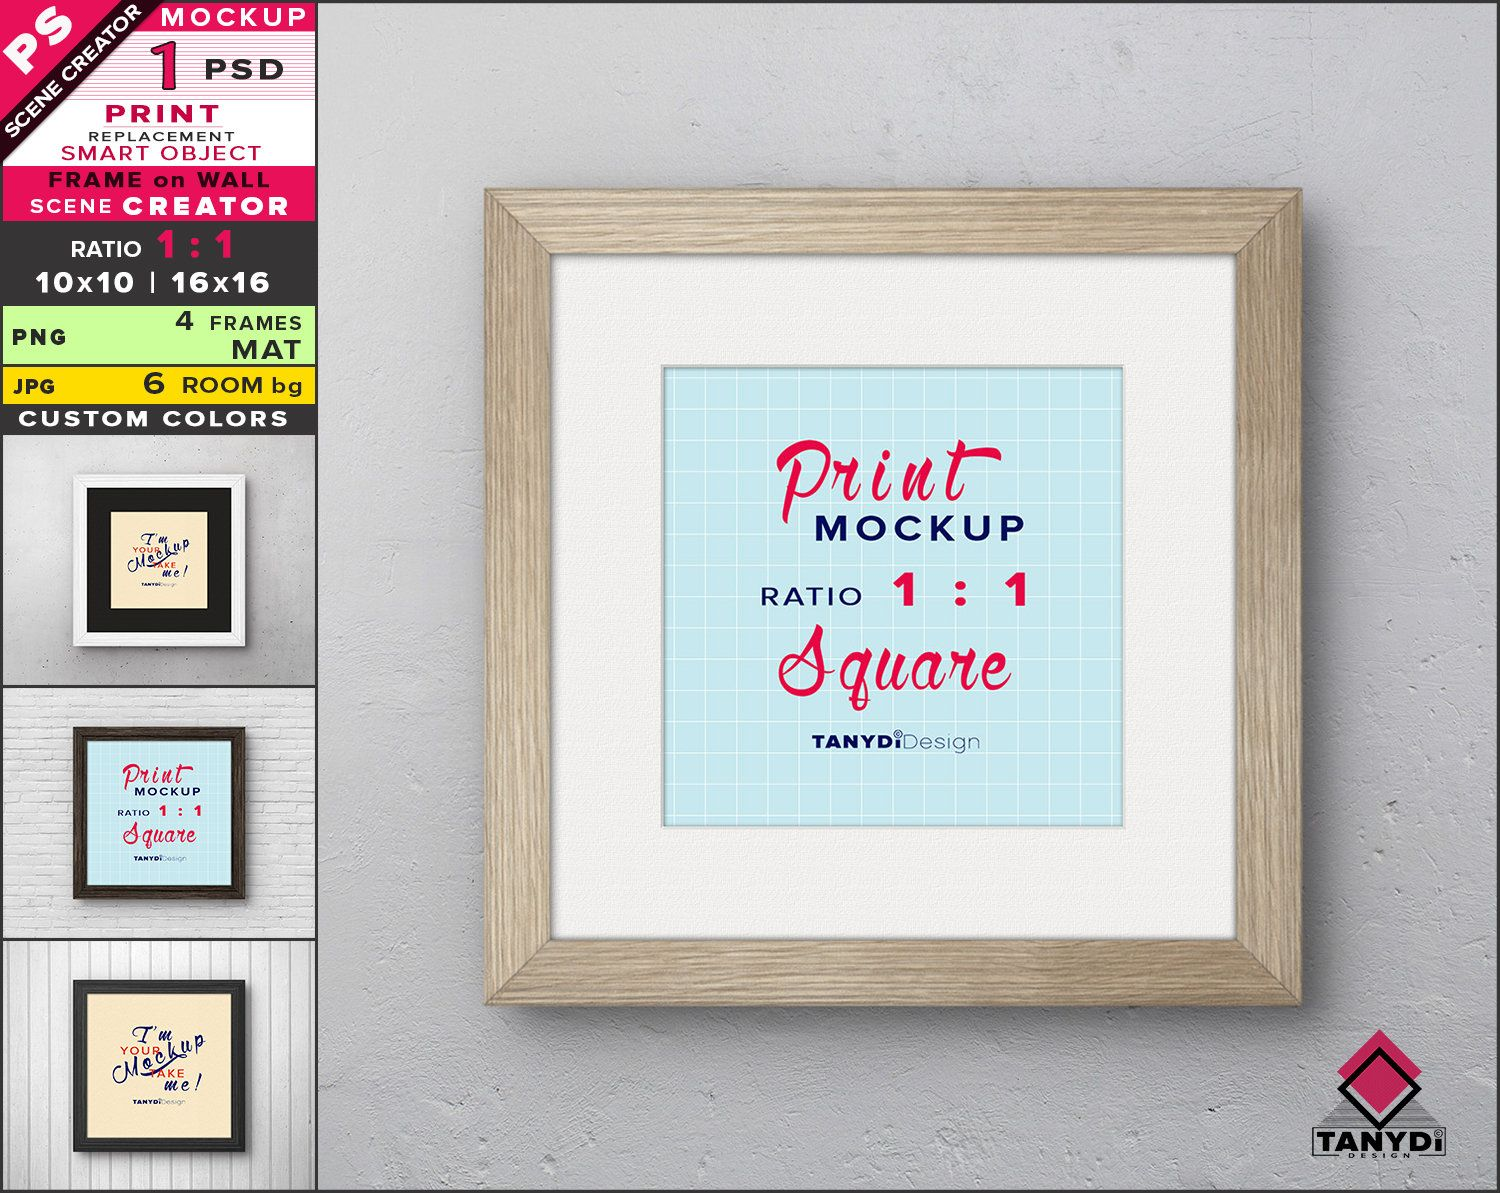 Square Frame On Wall Photoshop Print Mockup Png Black White Wood Frame And Mat Smart Object Mock Up Scene Creator F 11 W 2 Scene Creator Frames On Wall Print Mockup